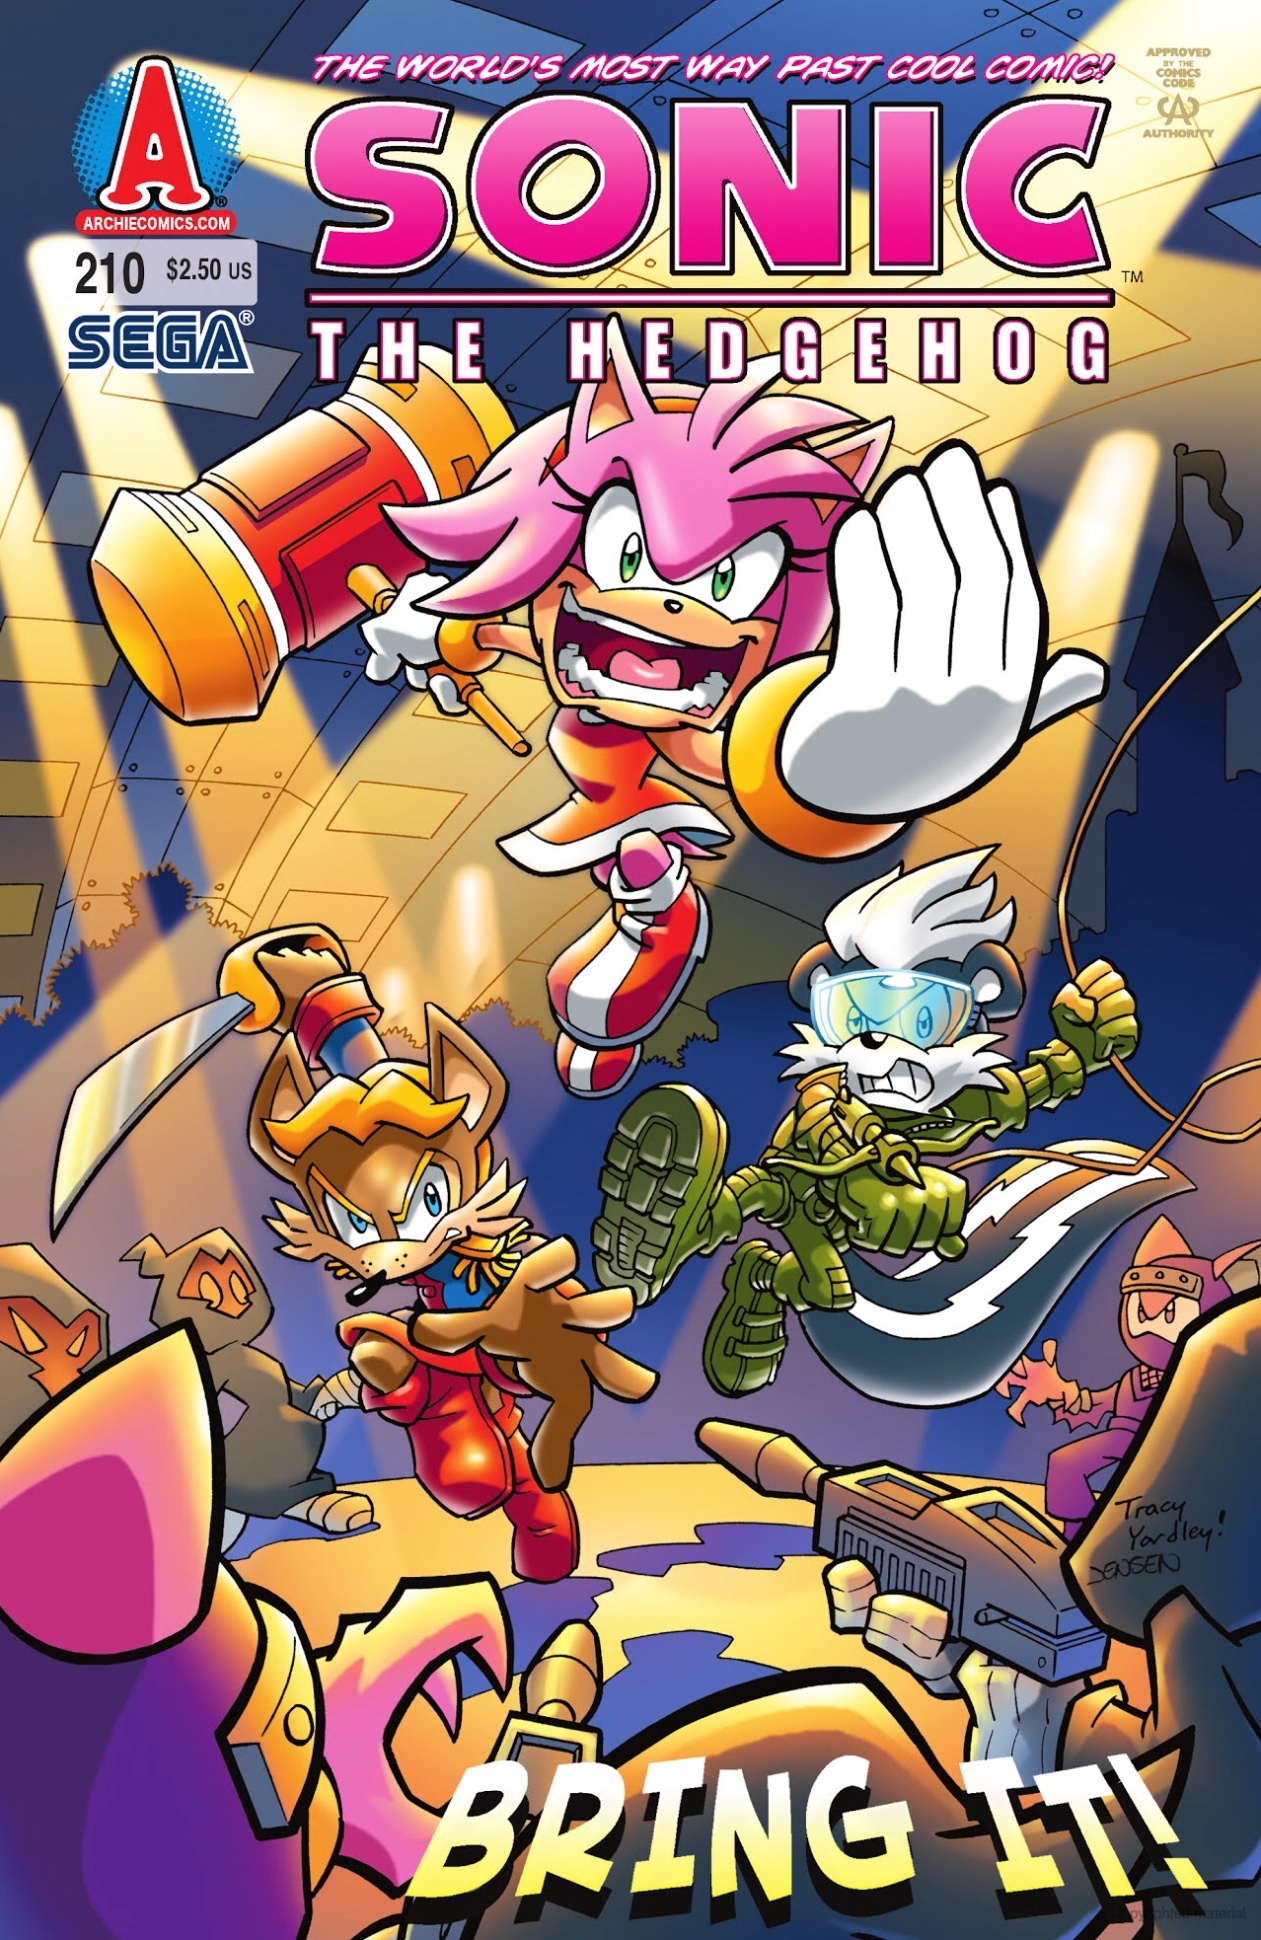 Archie Sonic the Hedgehog Issue 210